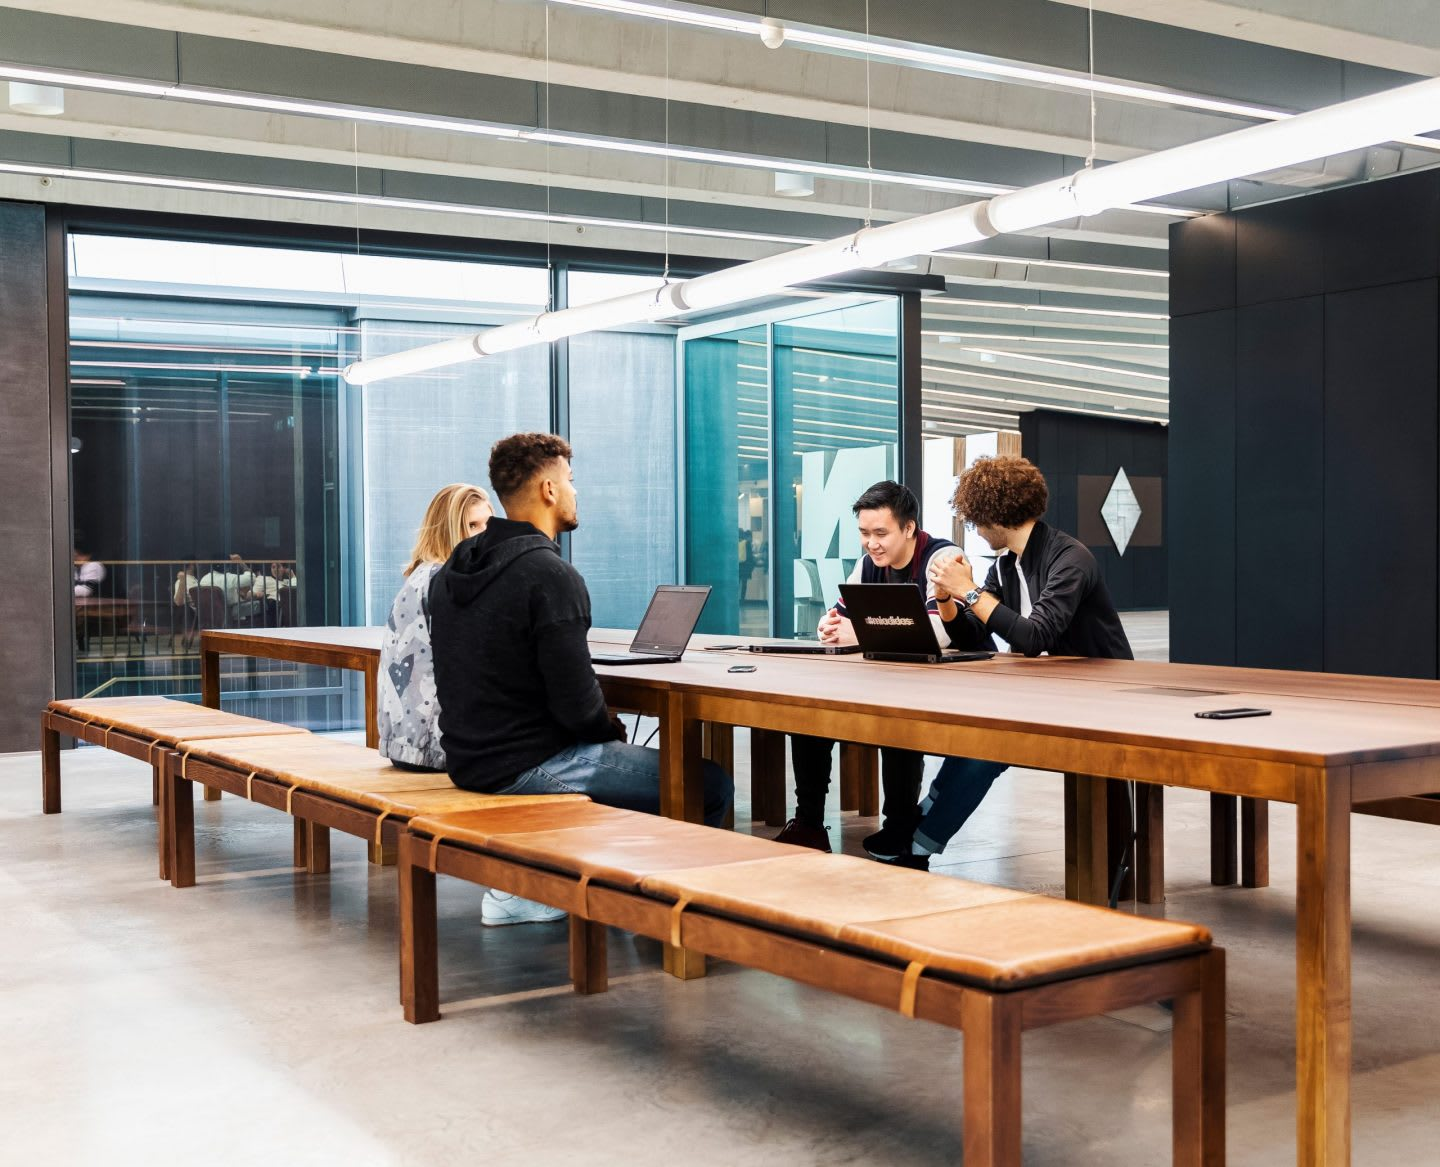 Men and women working at a table on laptops while discussing ideas, adidas, employees, workplace, culture, headquarters